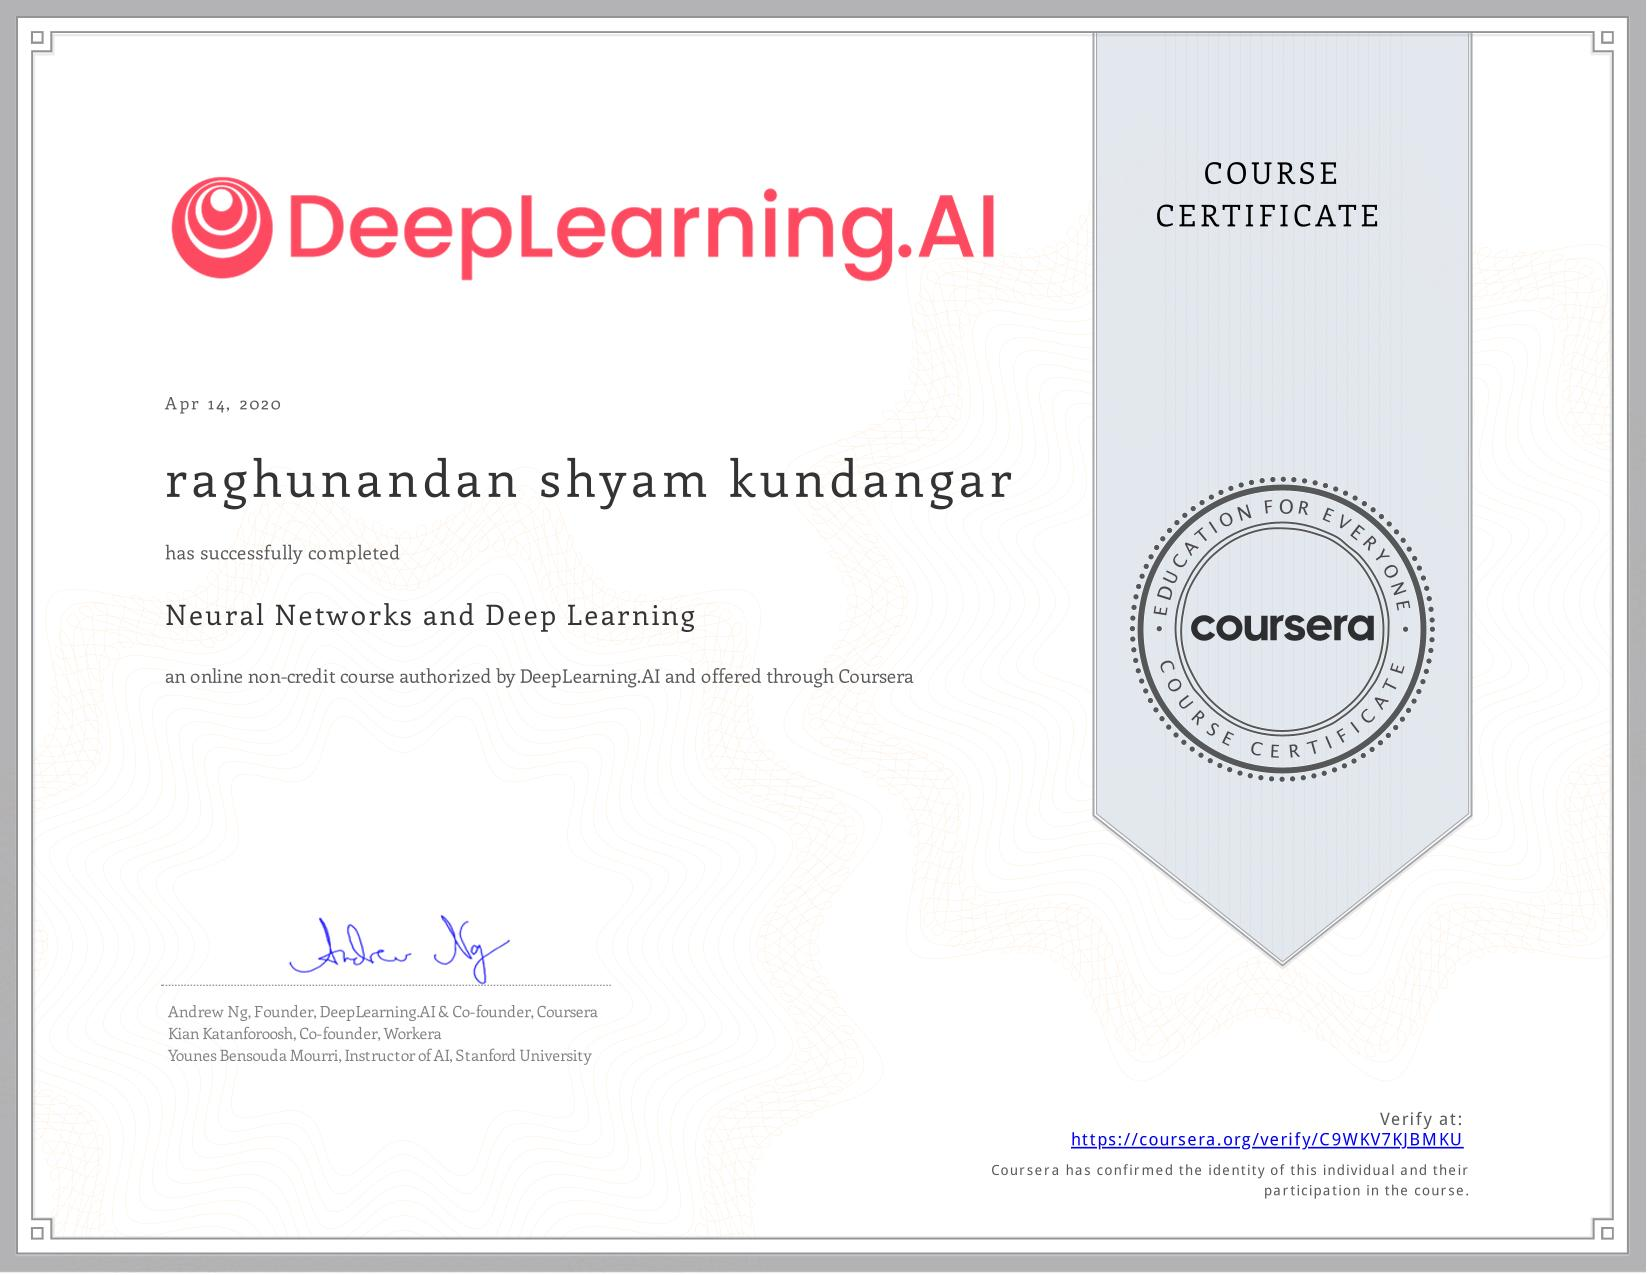 View certificate for raghunandan shyam kundangar, Neural Networks and Deep Learning, an online non-credit course authorized by  & deeplearning.ai and offered through Coursera